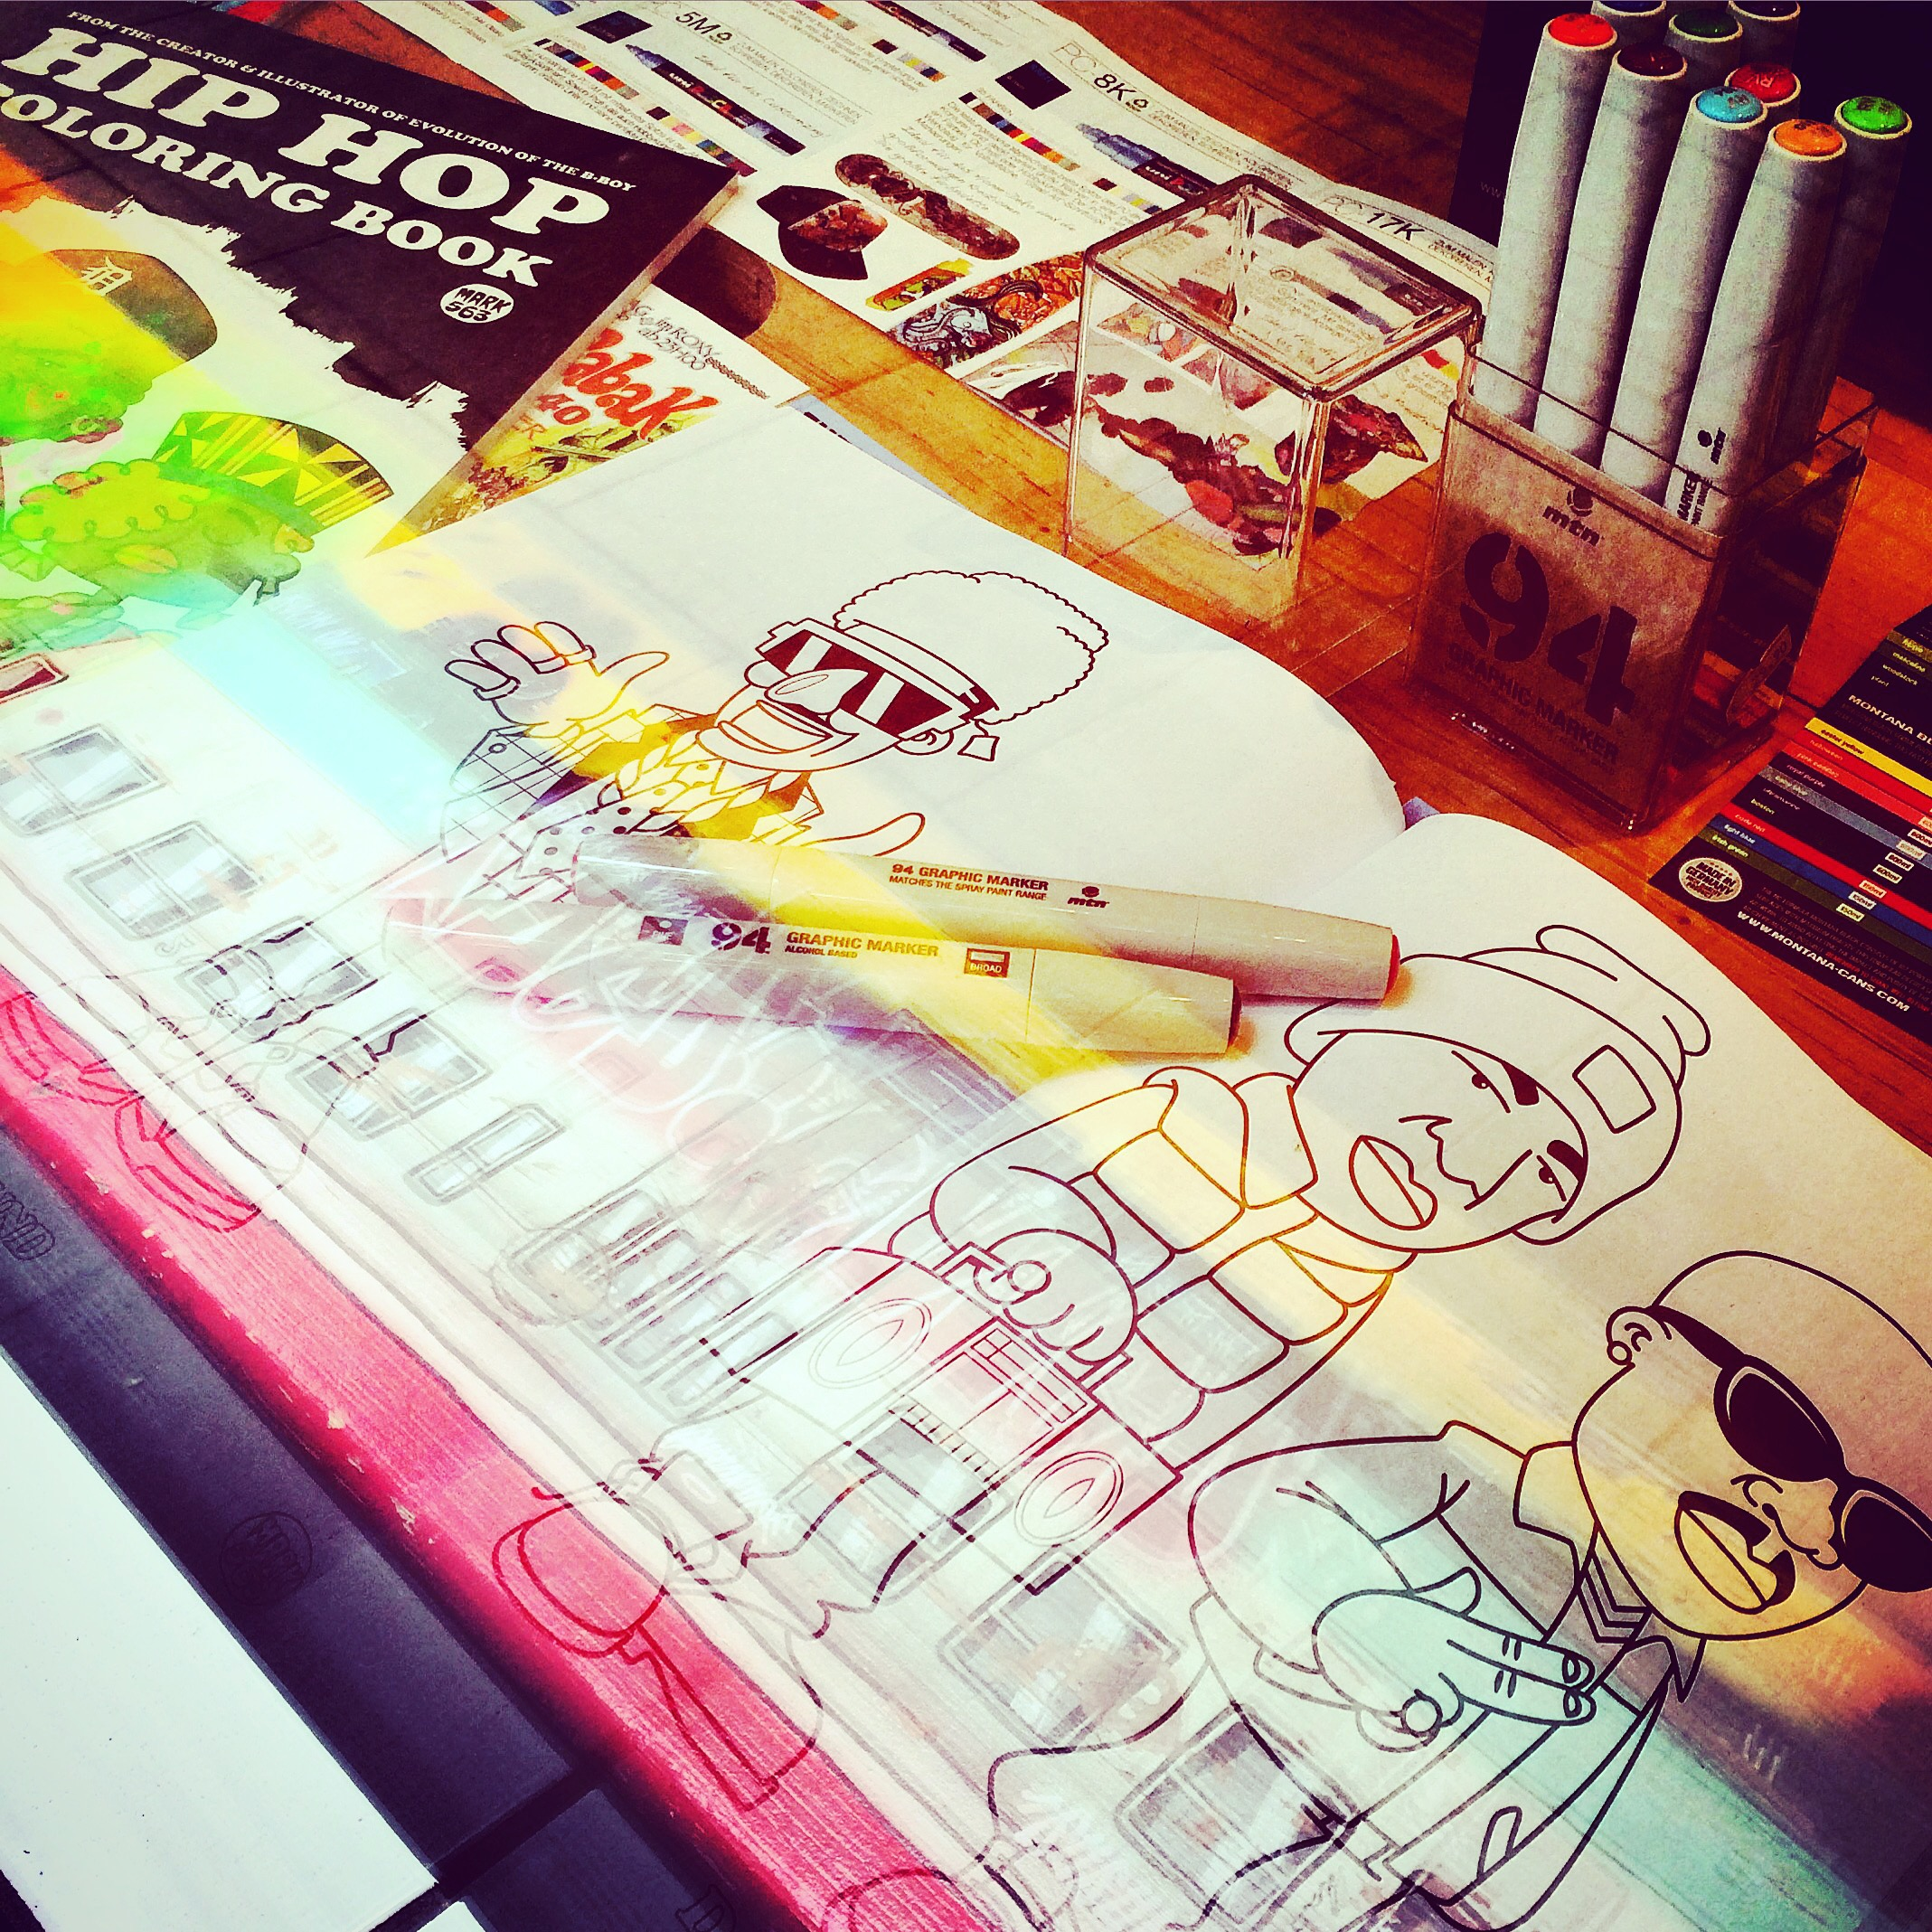 Dedicated Store » Blog Archive » DEDICATED to HIP HOP COLORING BOOK